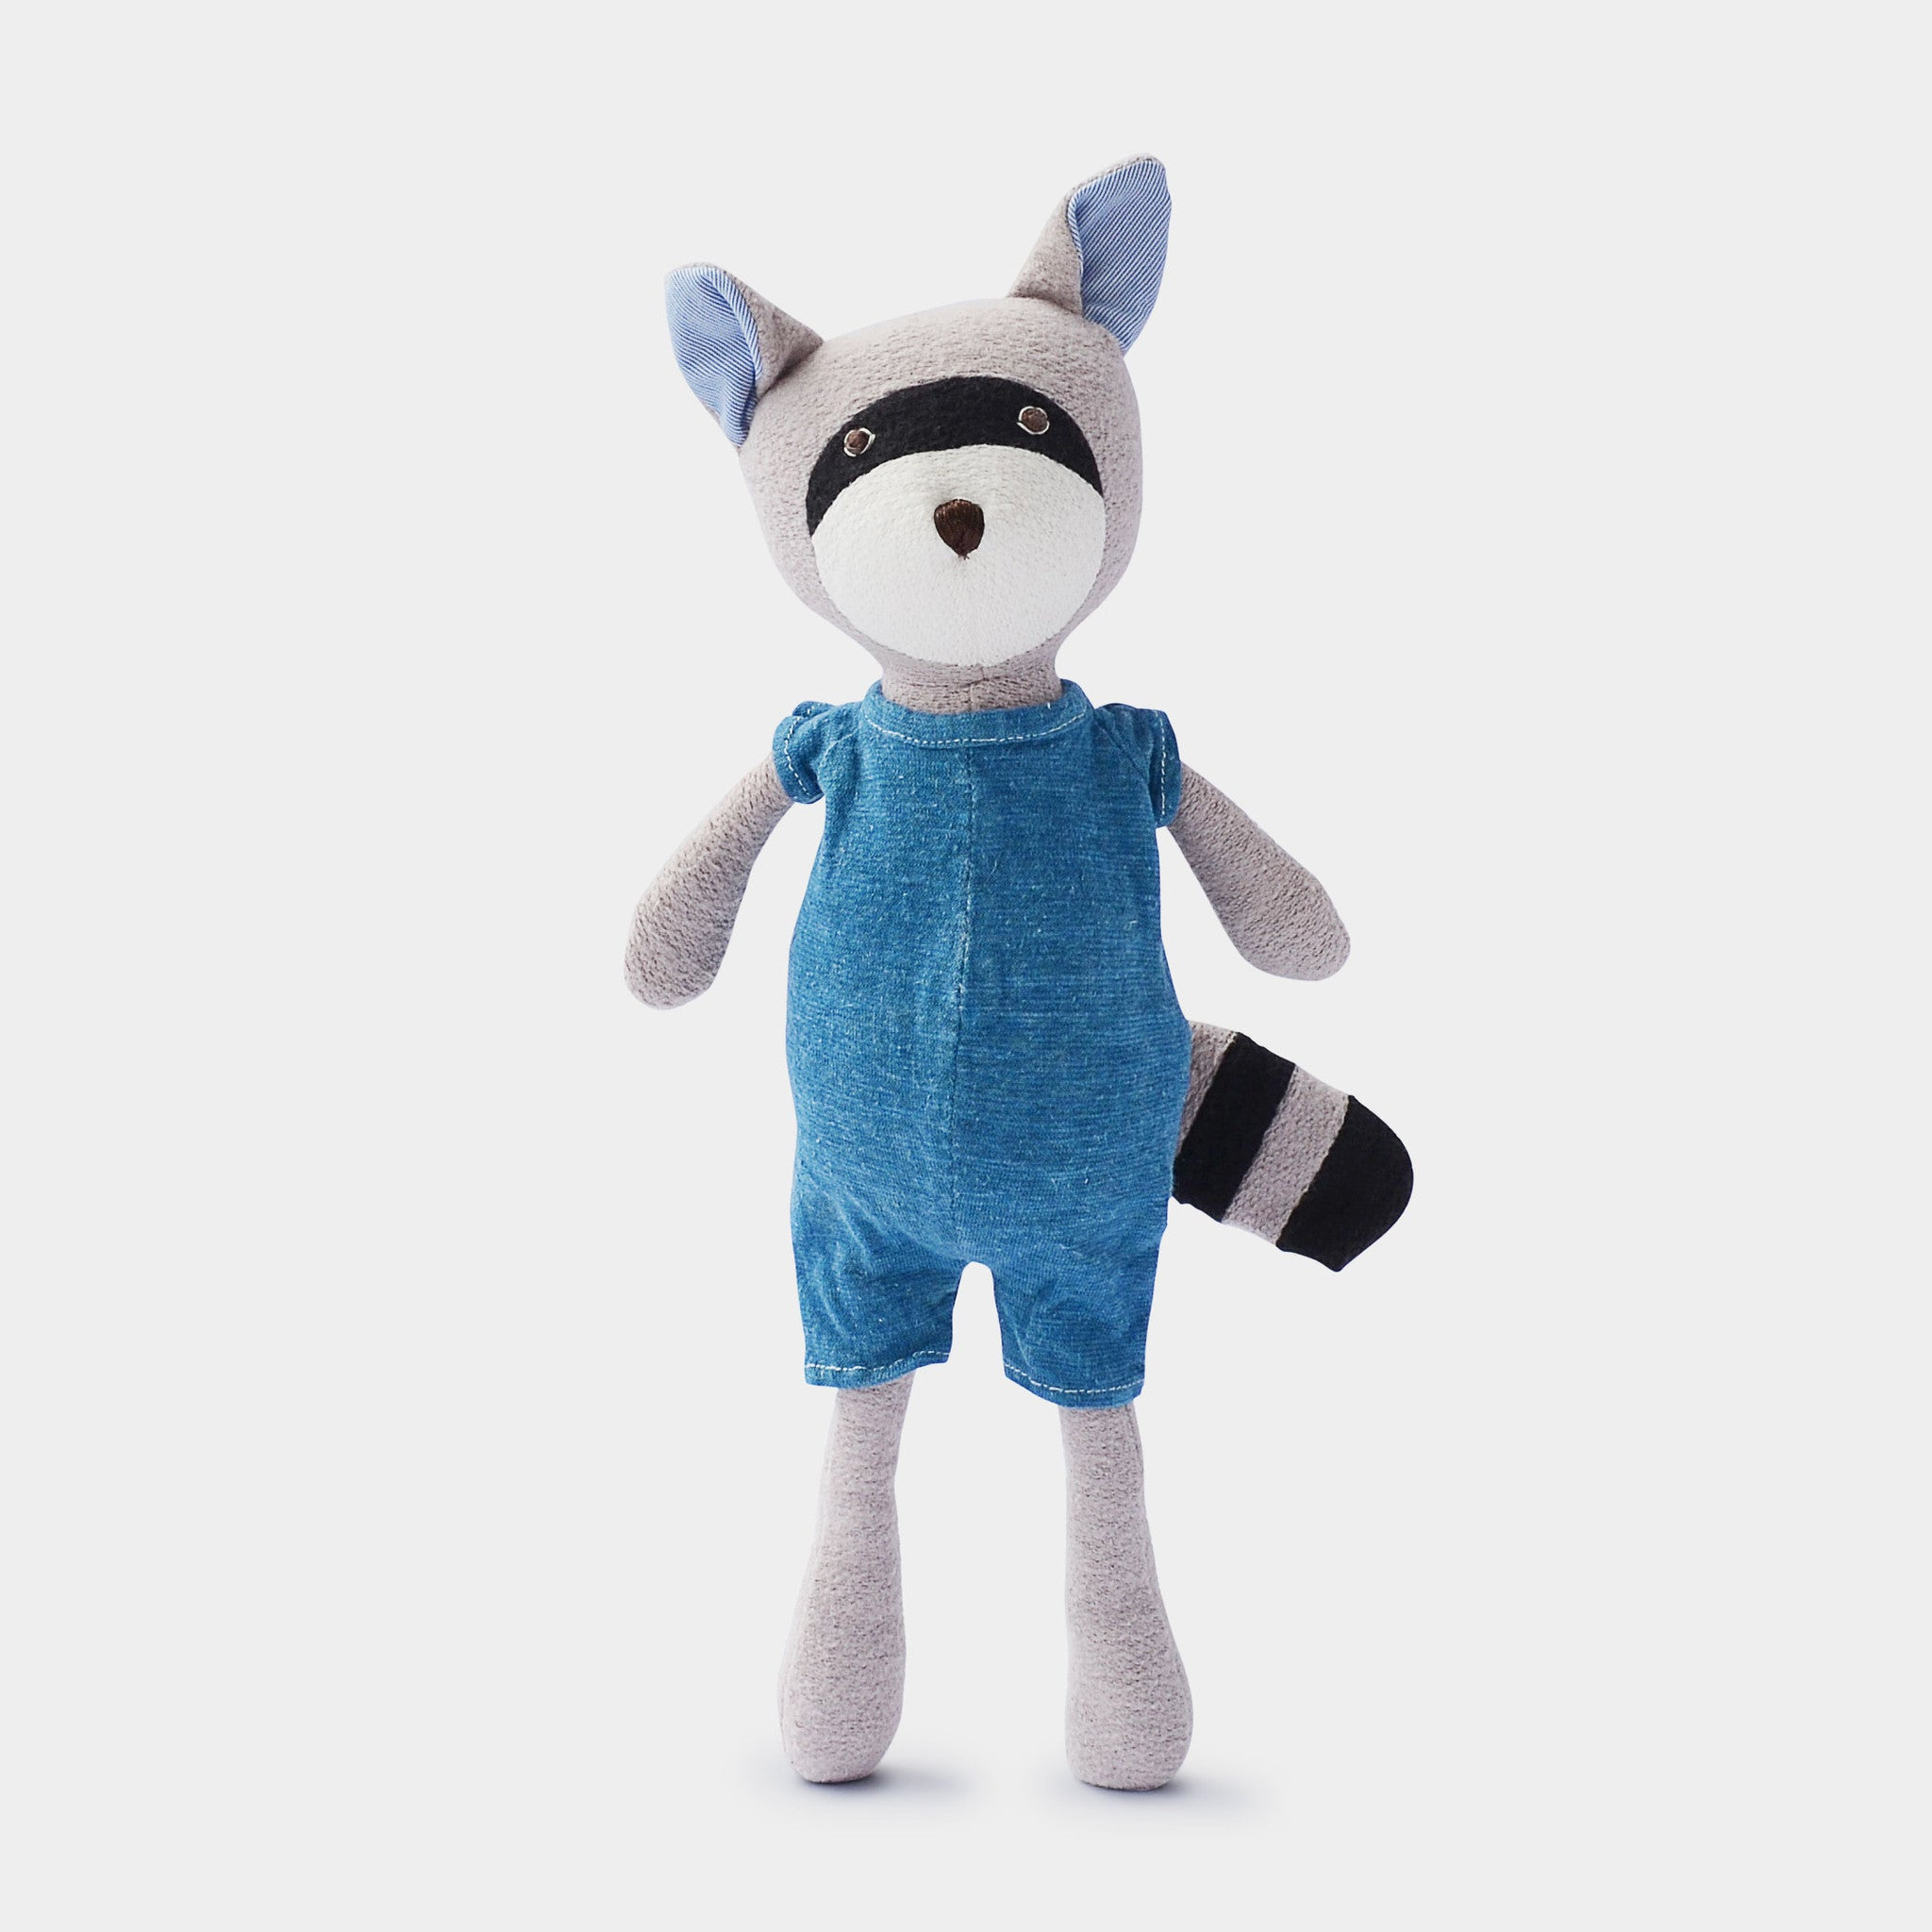 The grey soft toy, Max Raccoon - a sustainable organic cotton cuddly toy raccoon by Hazel Village